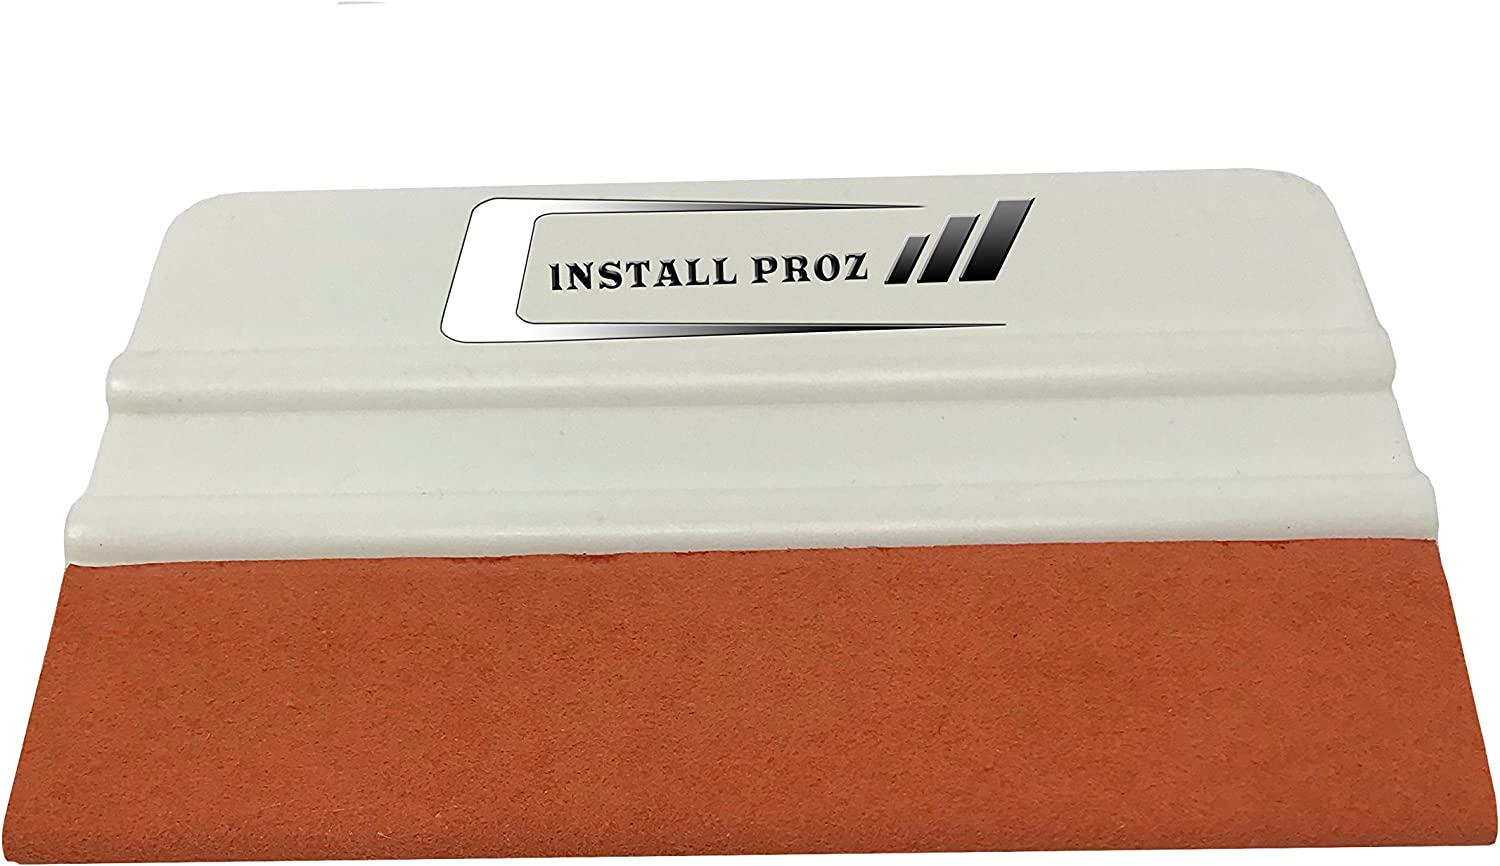 Install Proz Suede Hard Card Tool for Window Tinting and Vinyl 4